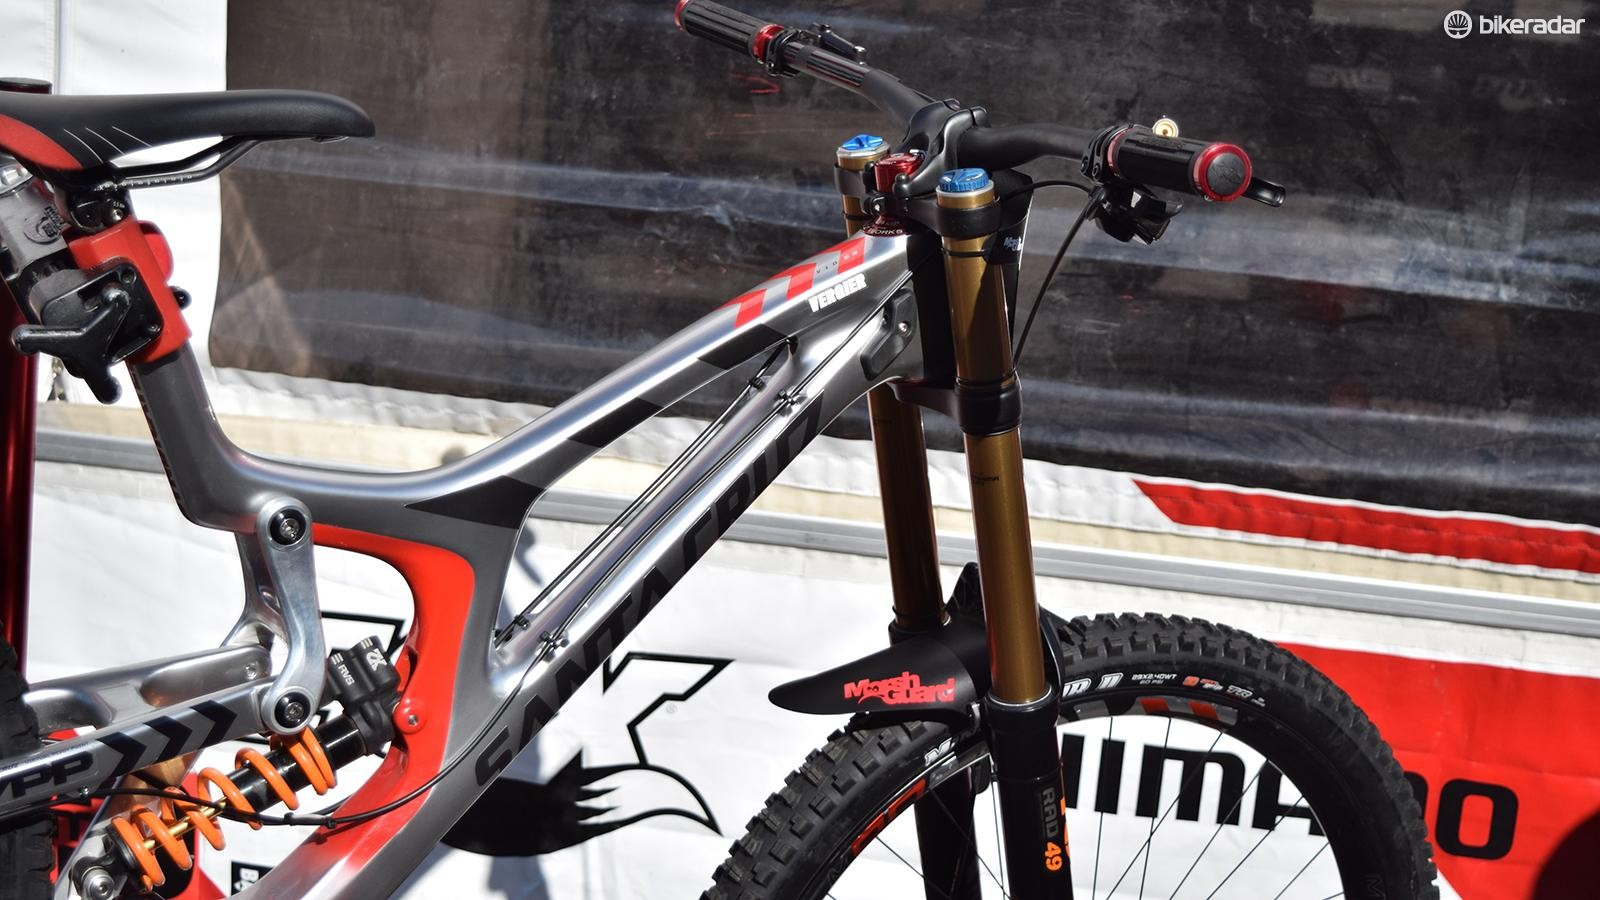 Fox's 49 fork offers 190mm of travel, extra offset and keeps the front end low. Notice how Loris' fork is set far from its minimum height